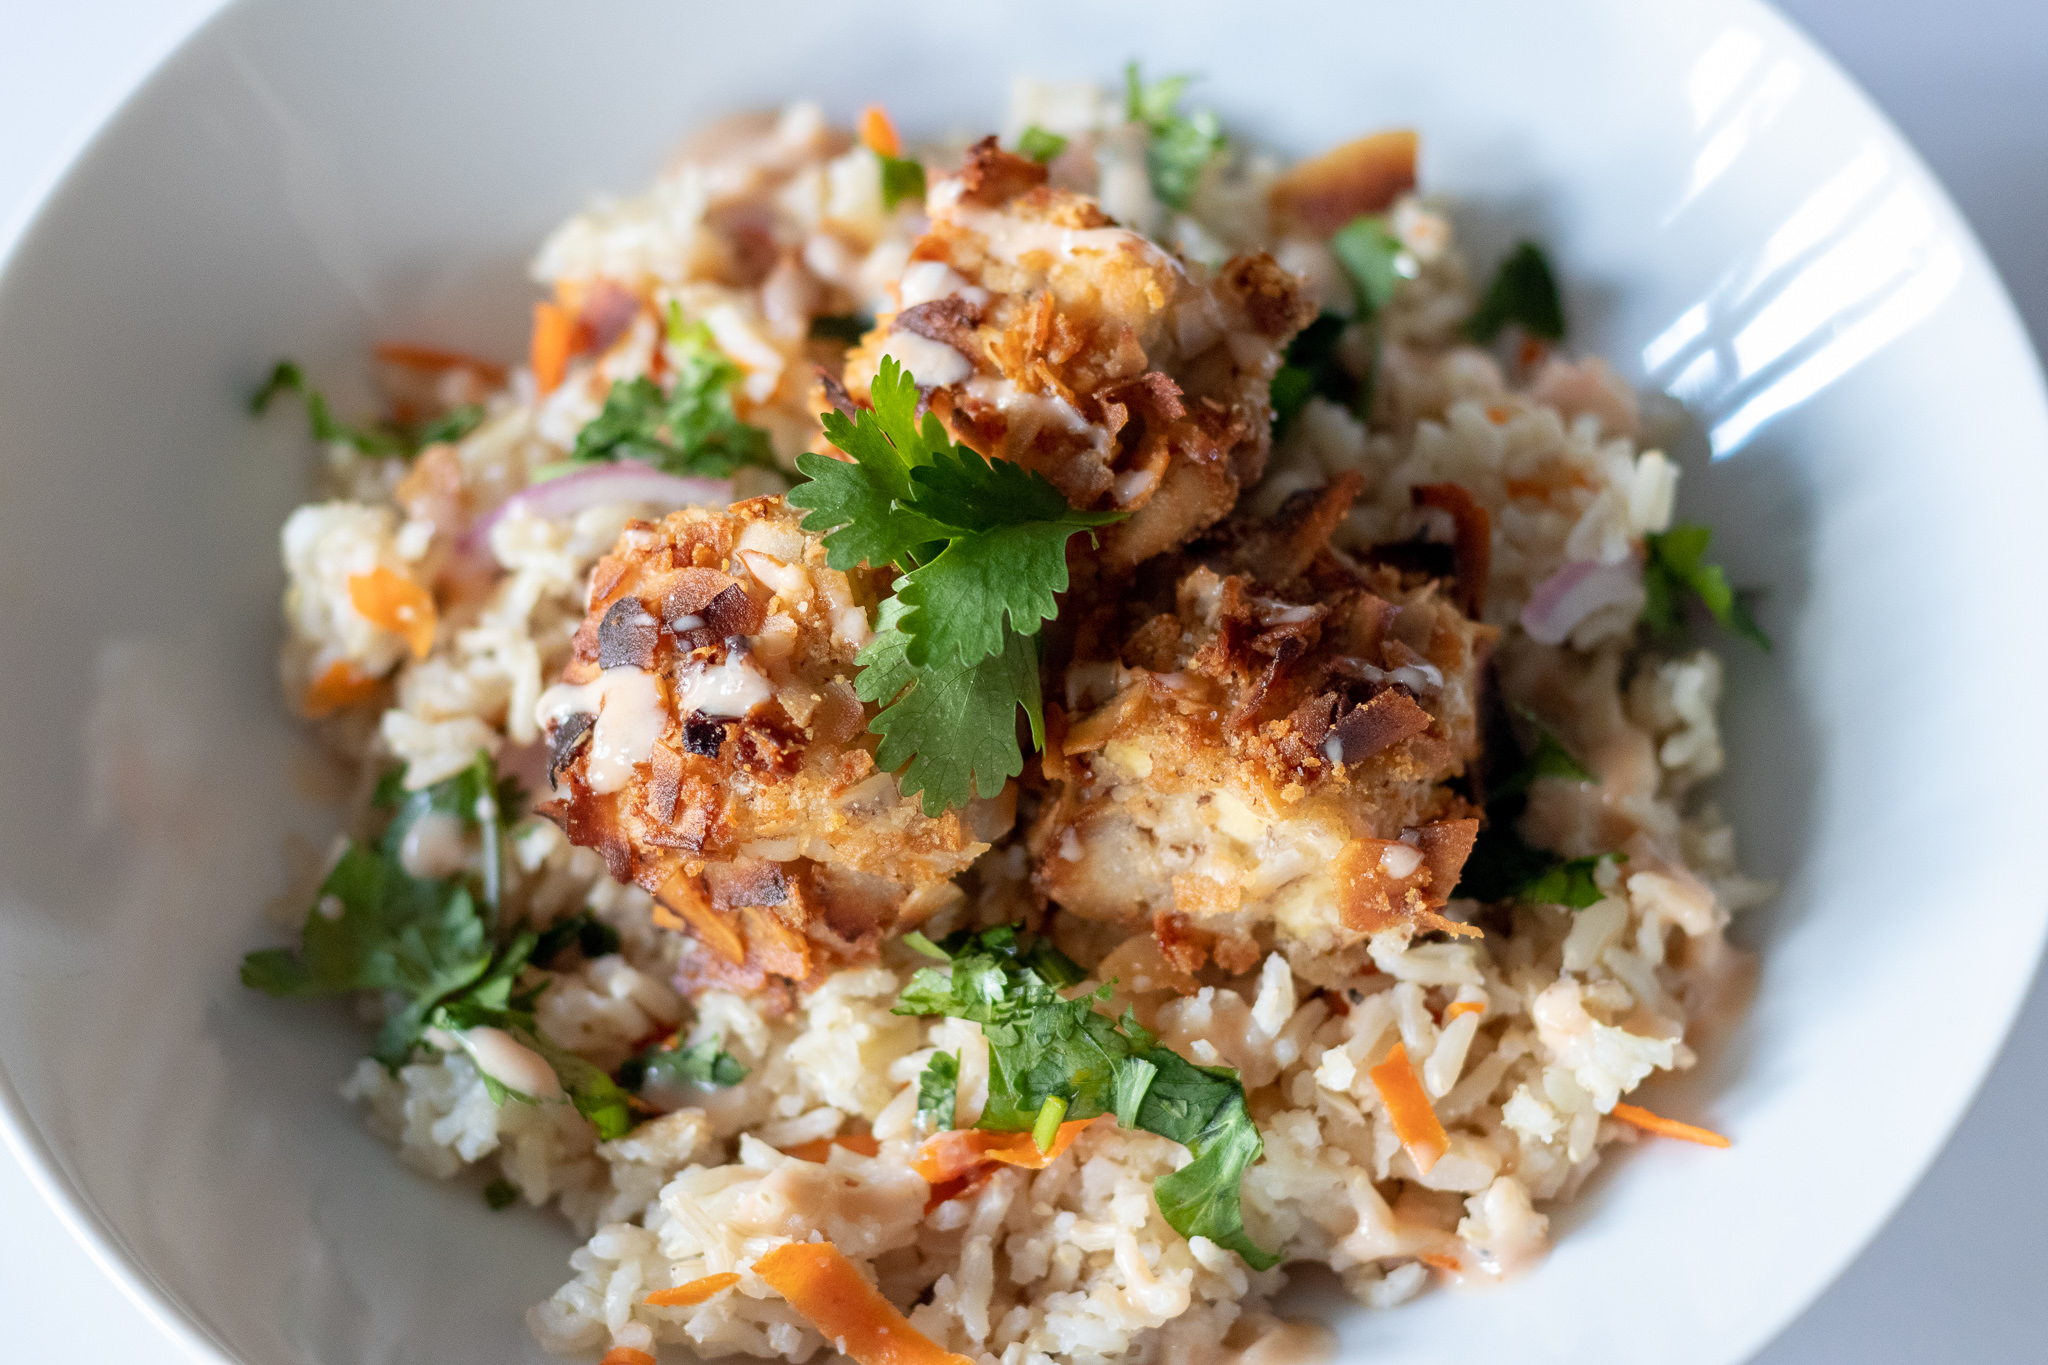 This coconut tofu with tropical rice is perfect for quick and easy weeknight dinner. It is light, yet filling and satisfying. The tofu is crispy, and full of sweet coconut flavor, while the rice savory and refreshing. This may just become one of your new favorite quick dinners!